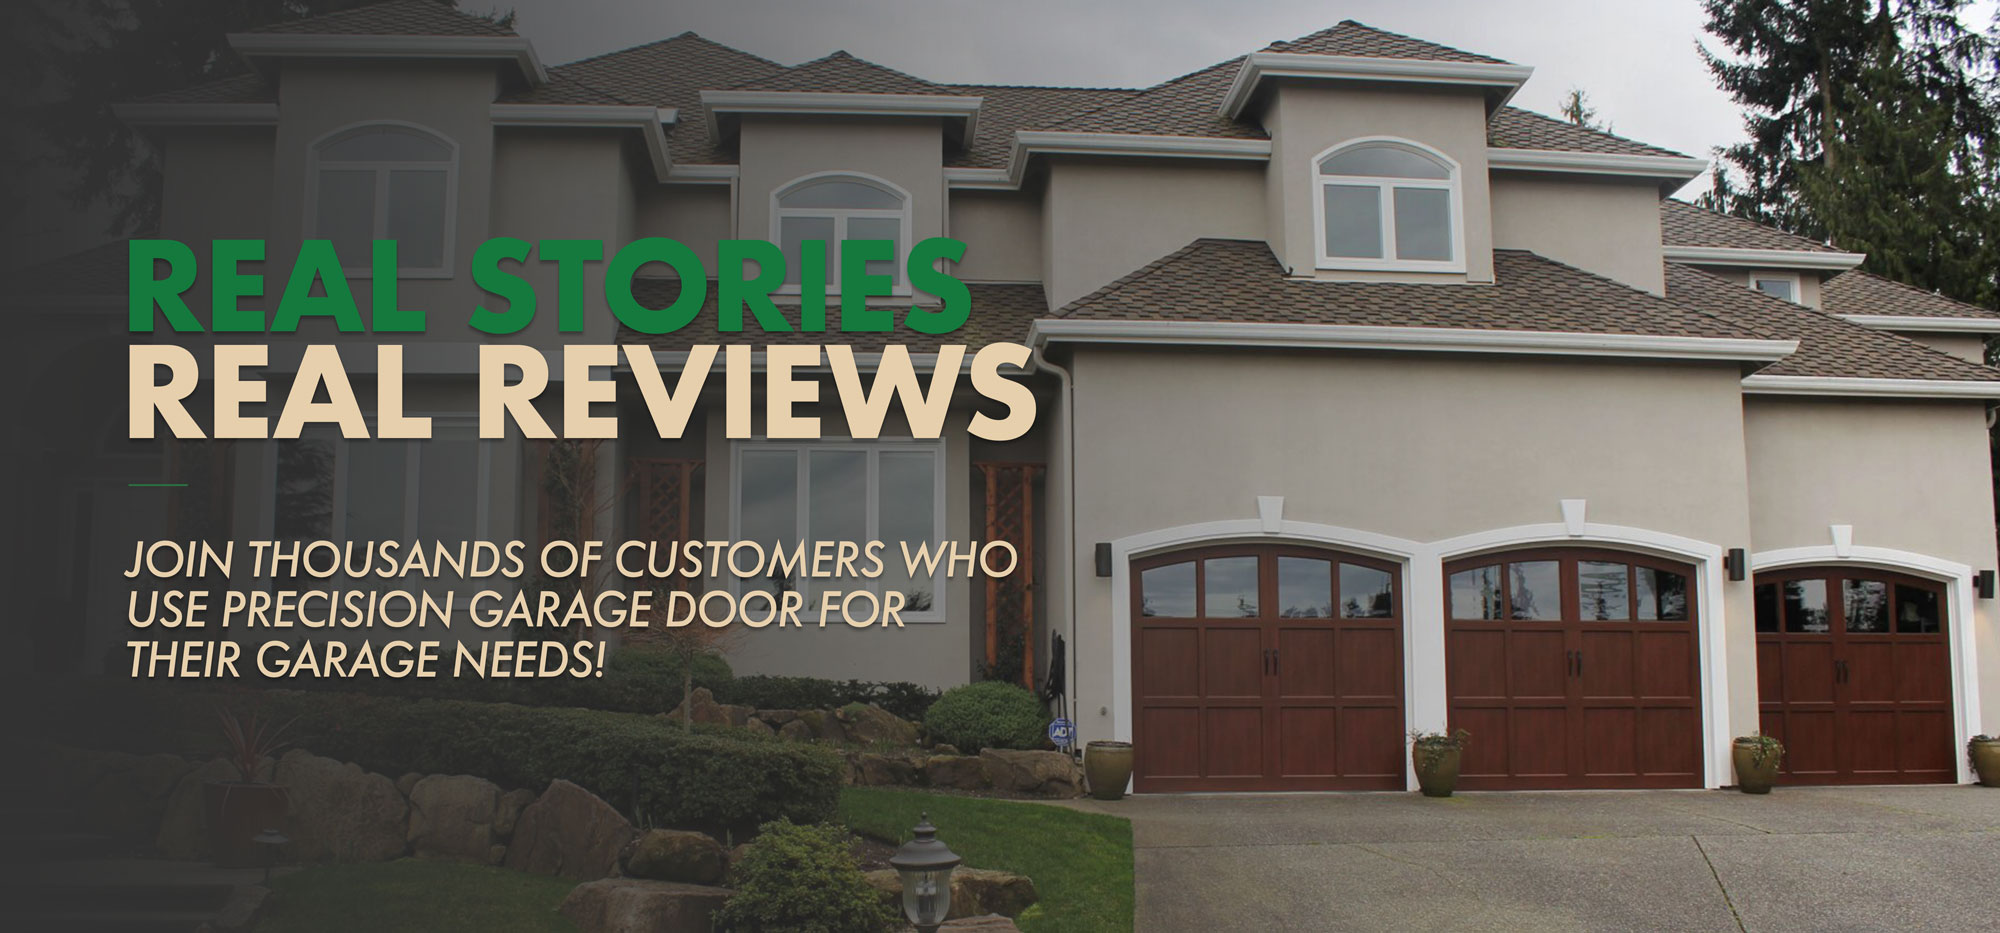 Garage Door Repair Yelp Precision Door Service New Garage Installation Customer Reviews